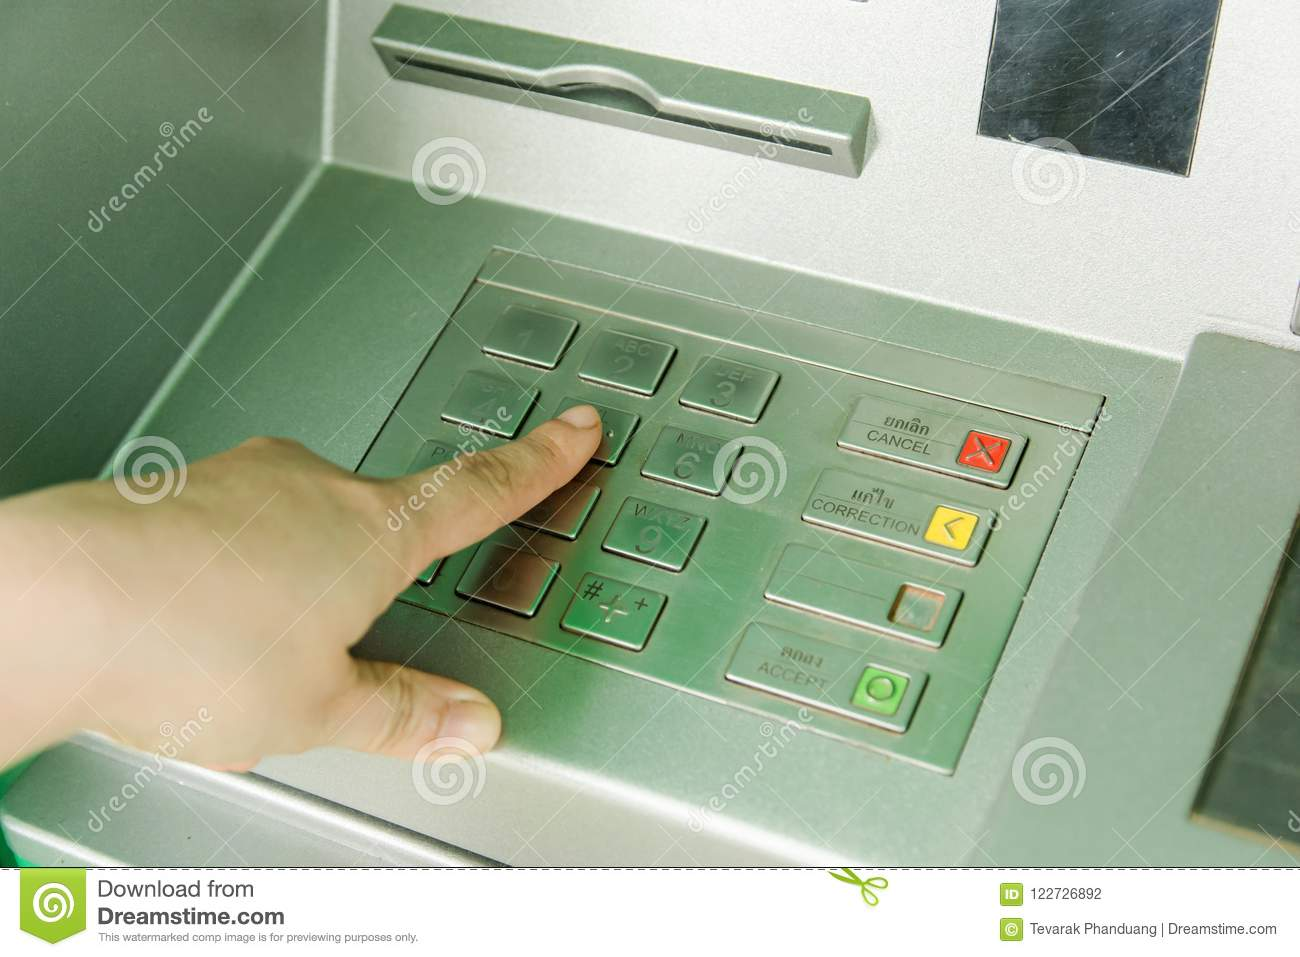 Close up of man hand entering password code on ATM bank machine